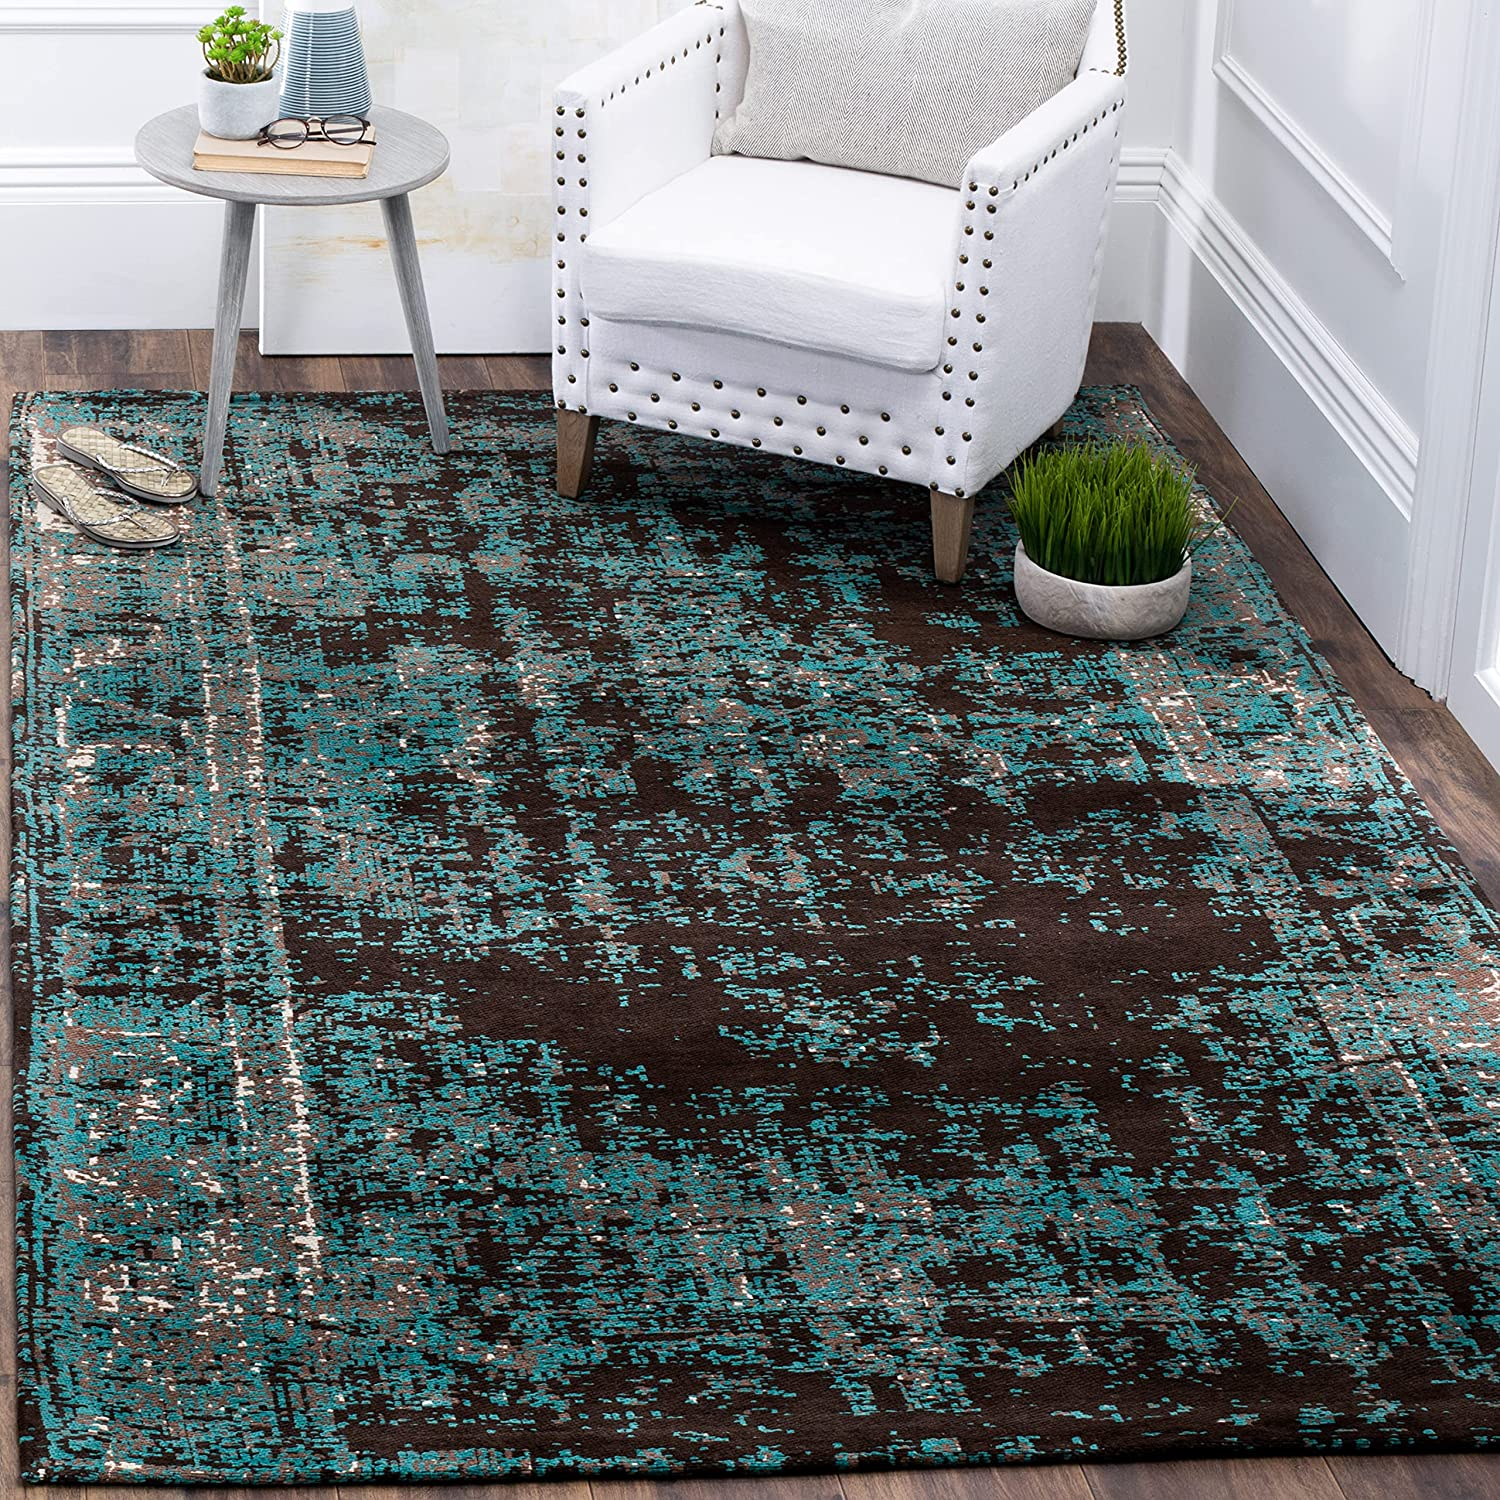 Safavieh Max 56% OFF Classic Popular brand in the world Vintage Collection CLV225A Rug Distressed Area